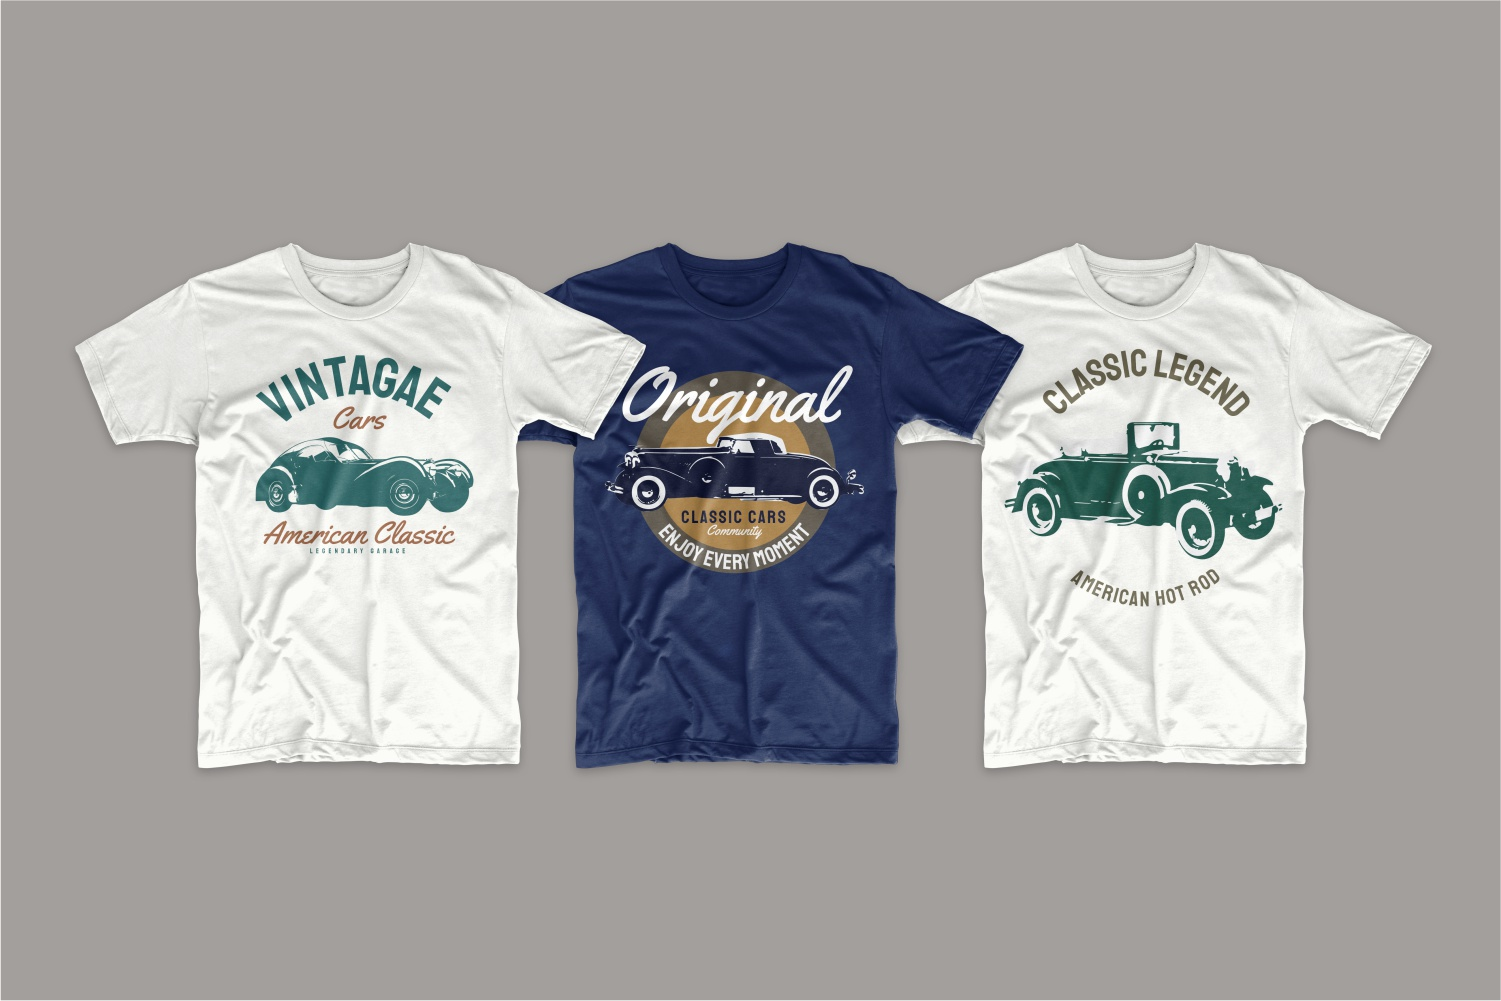 Two white and blue T-shirts with classic legendary car models.